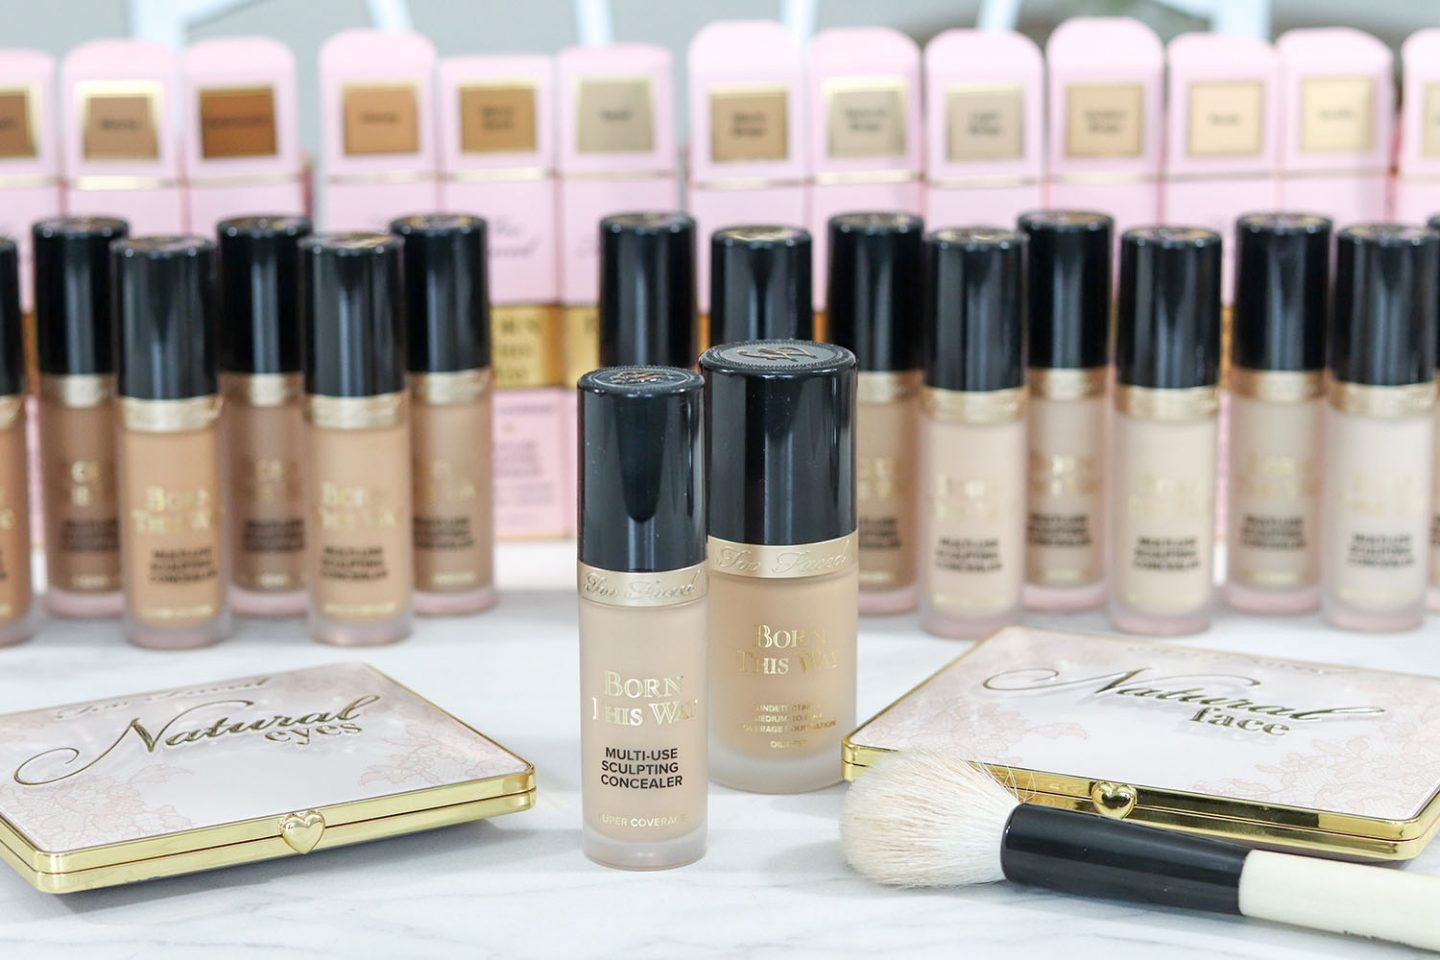 Too Faced Born This Way Multi Use Sculpting Concealer Review | Brighter Darling Blog